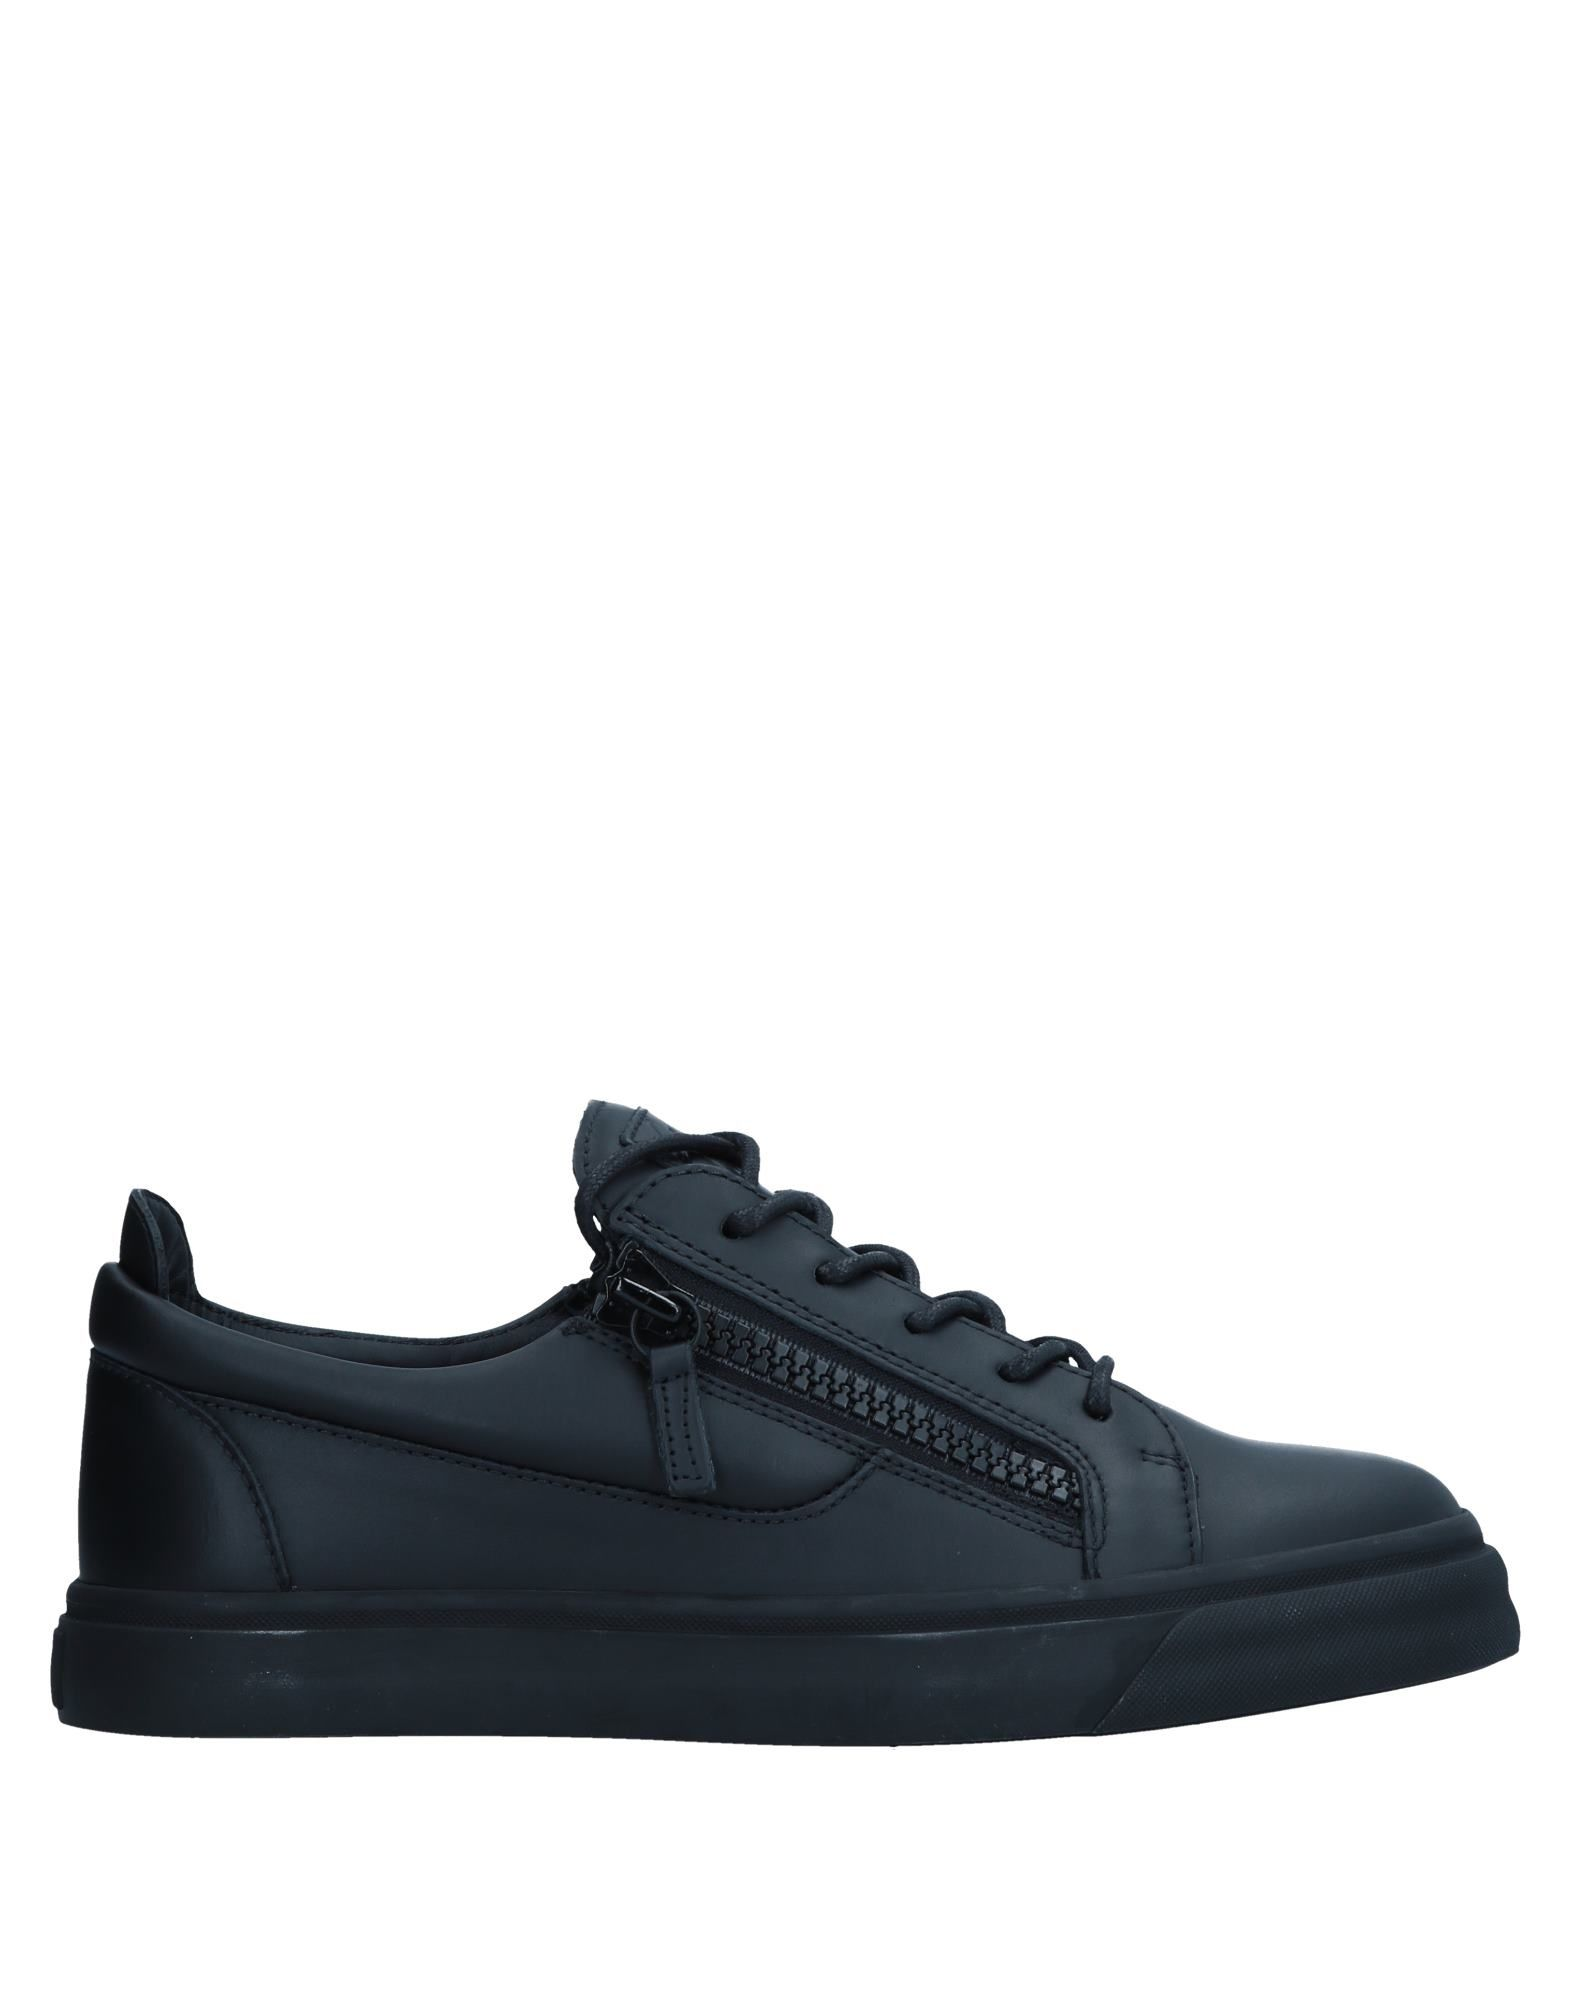 Sneakers Giuseppe Zanotti Homme - Sneakers Giuseppe Zanotti  Noir Chaussures casual sauvages